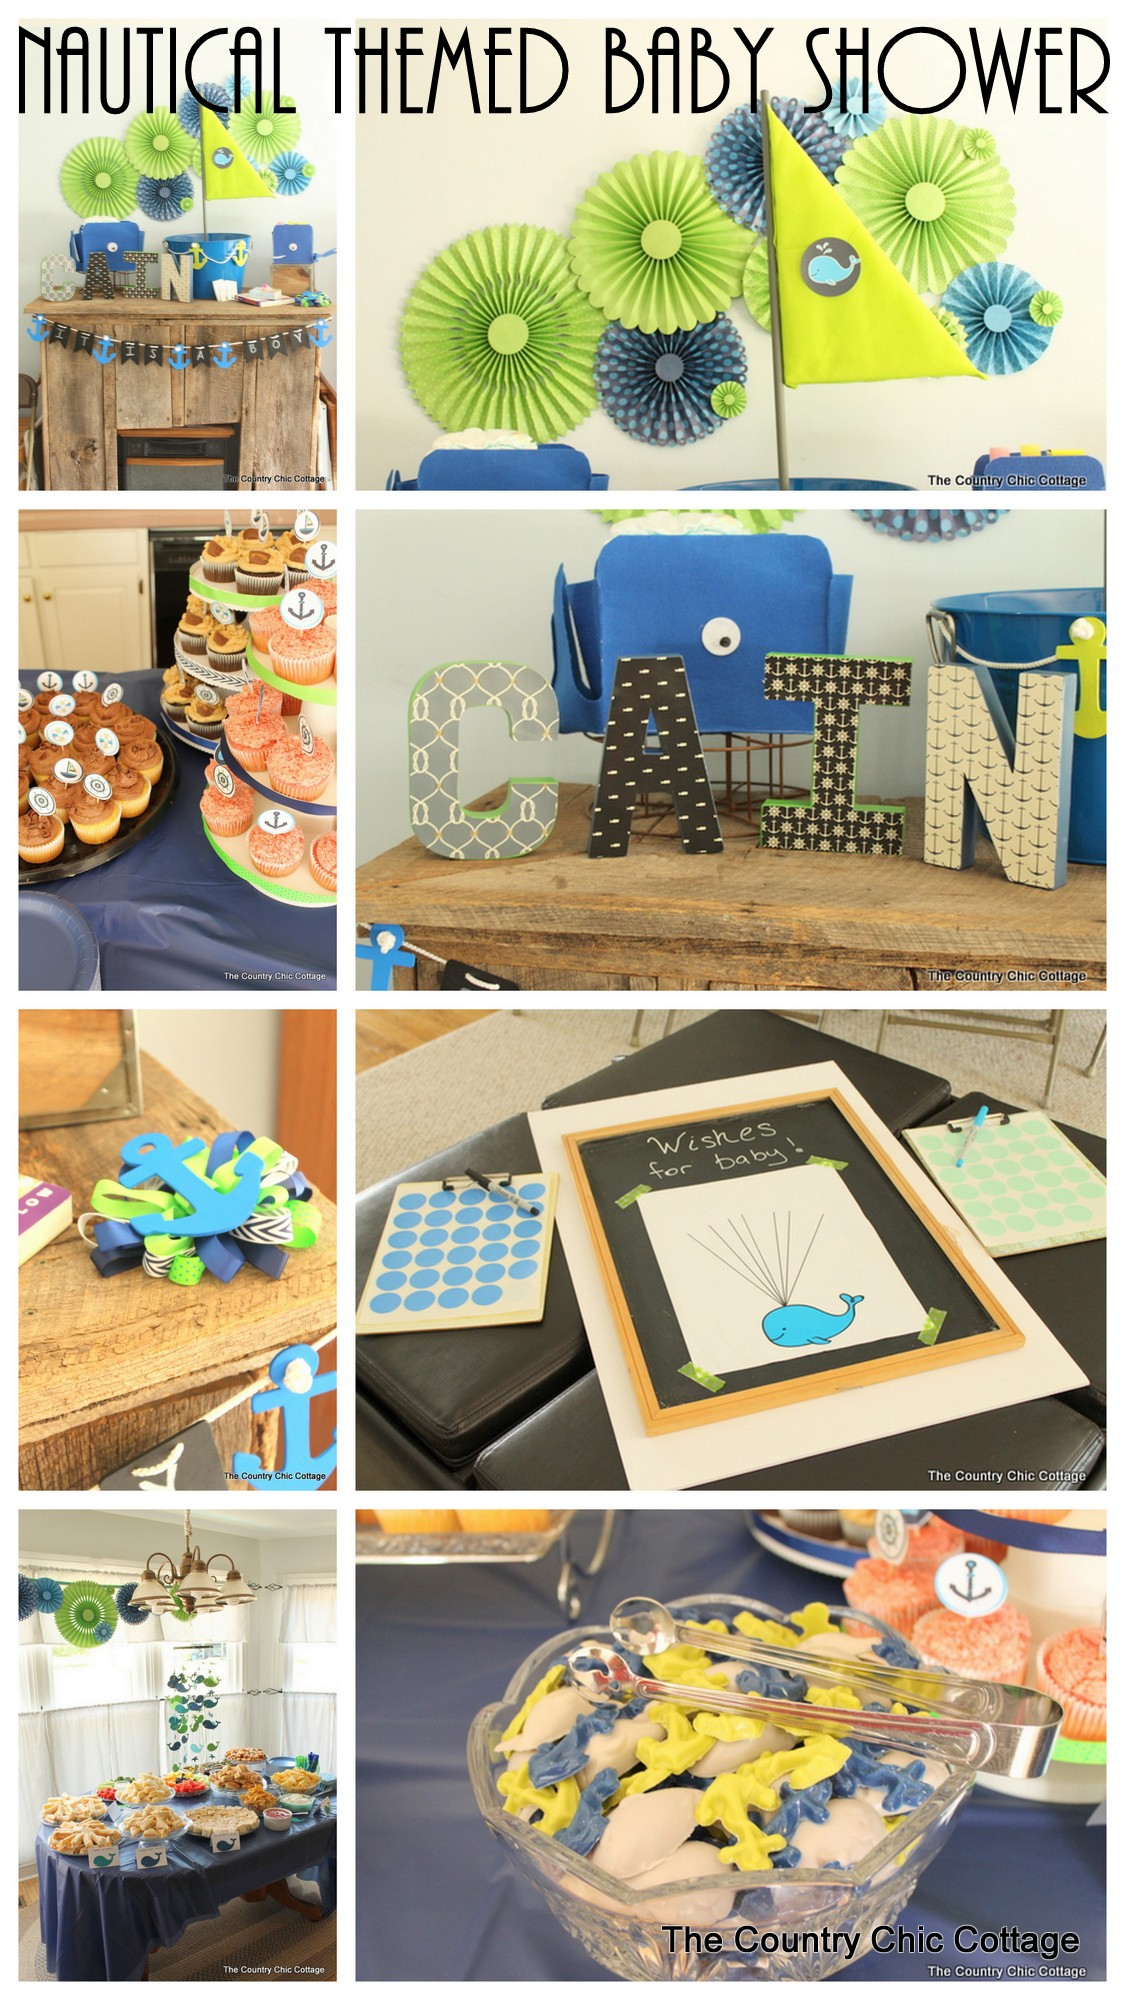 throw a nautical themed baby shower with these fun ideas